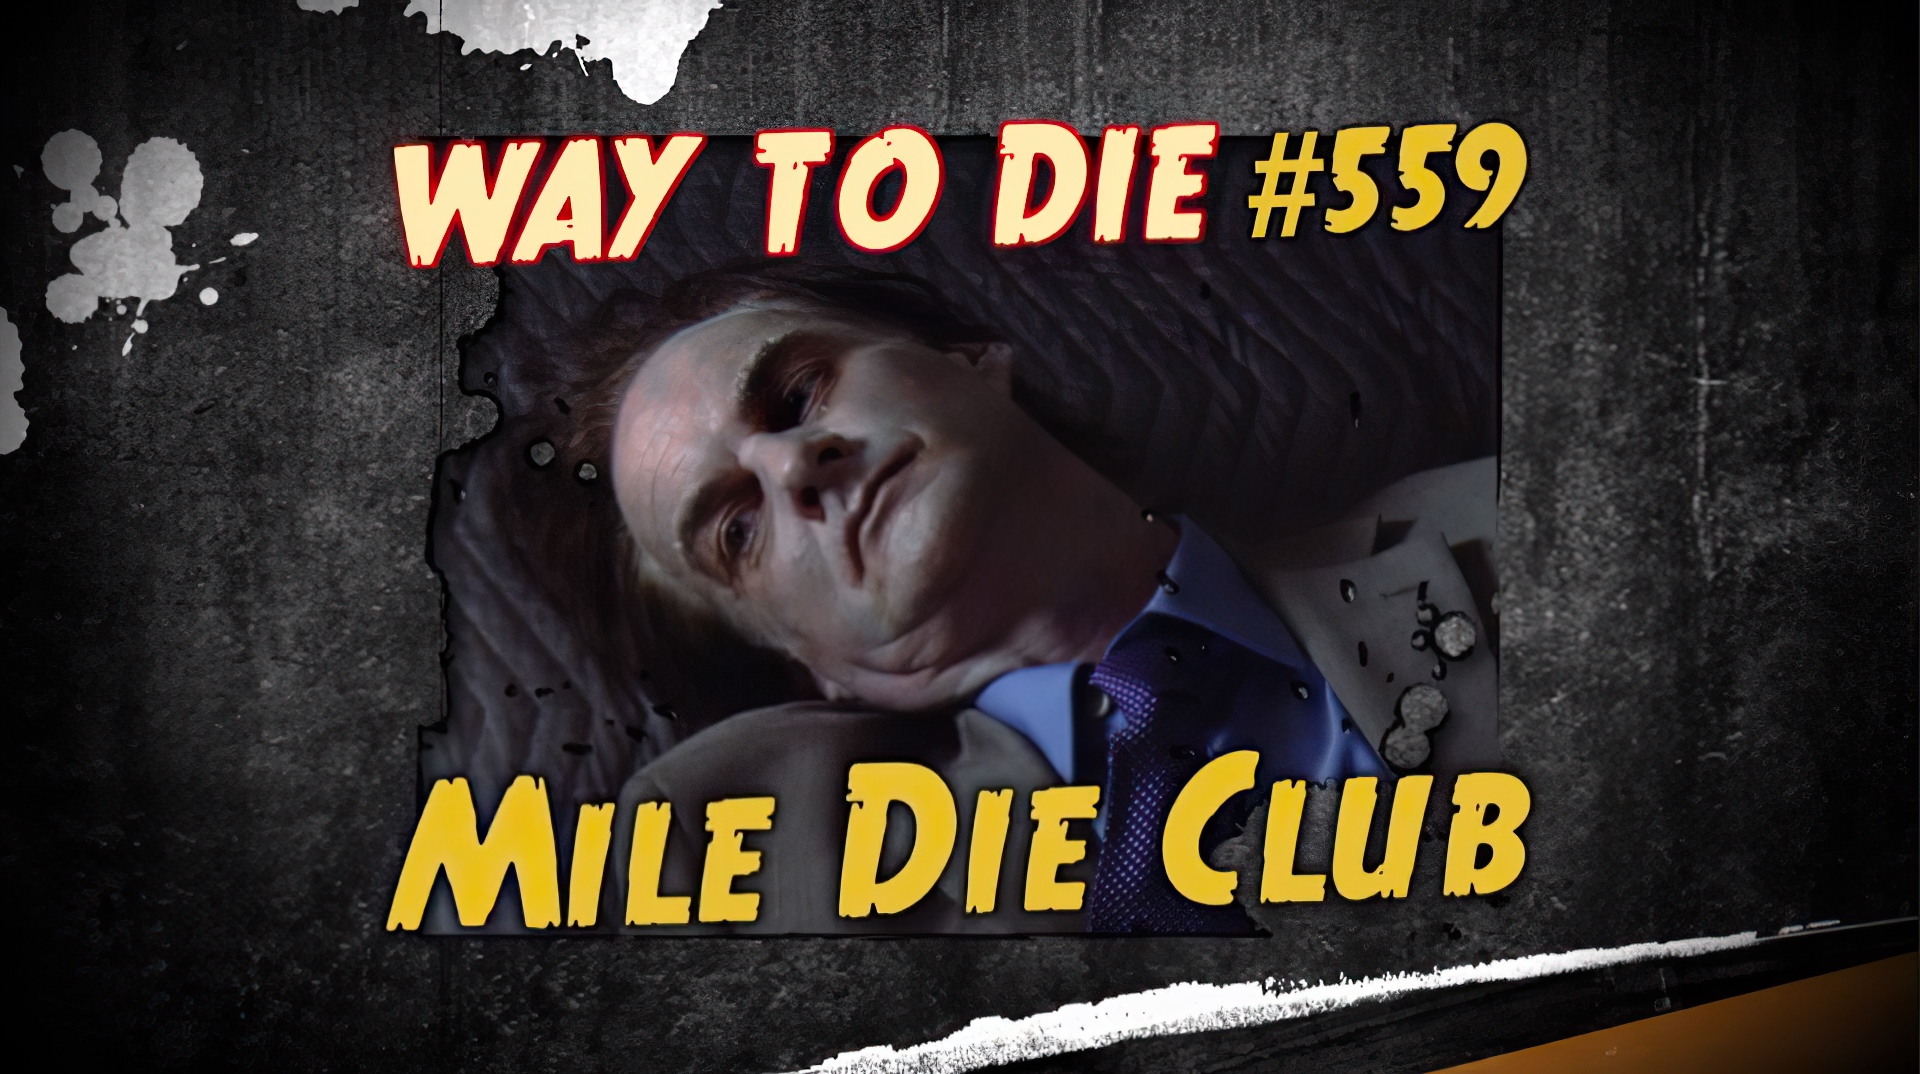 Mile Die Club